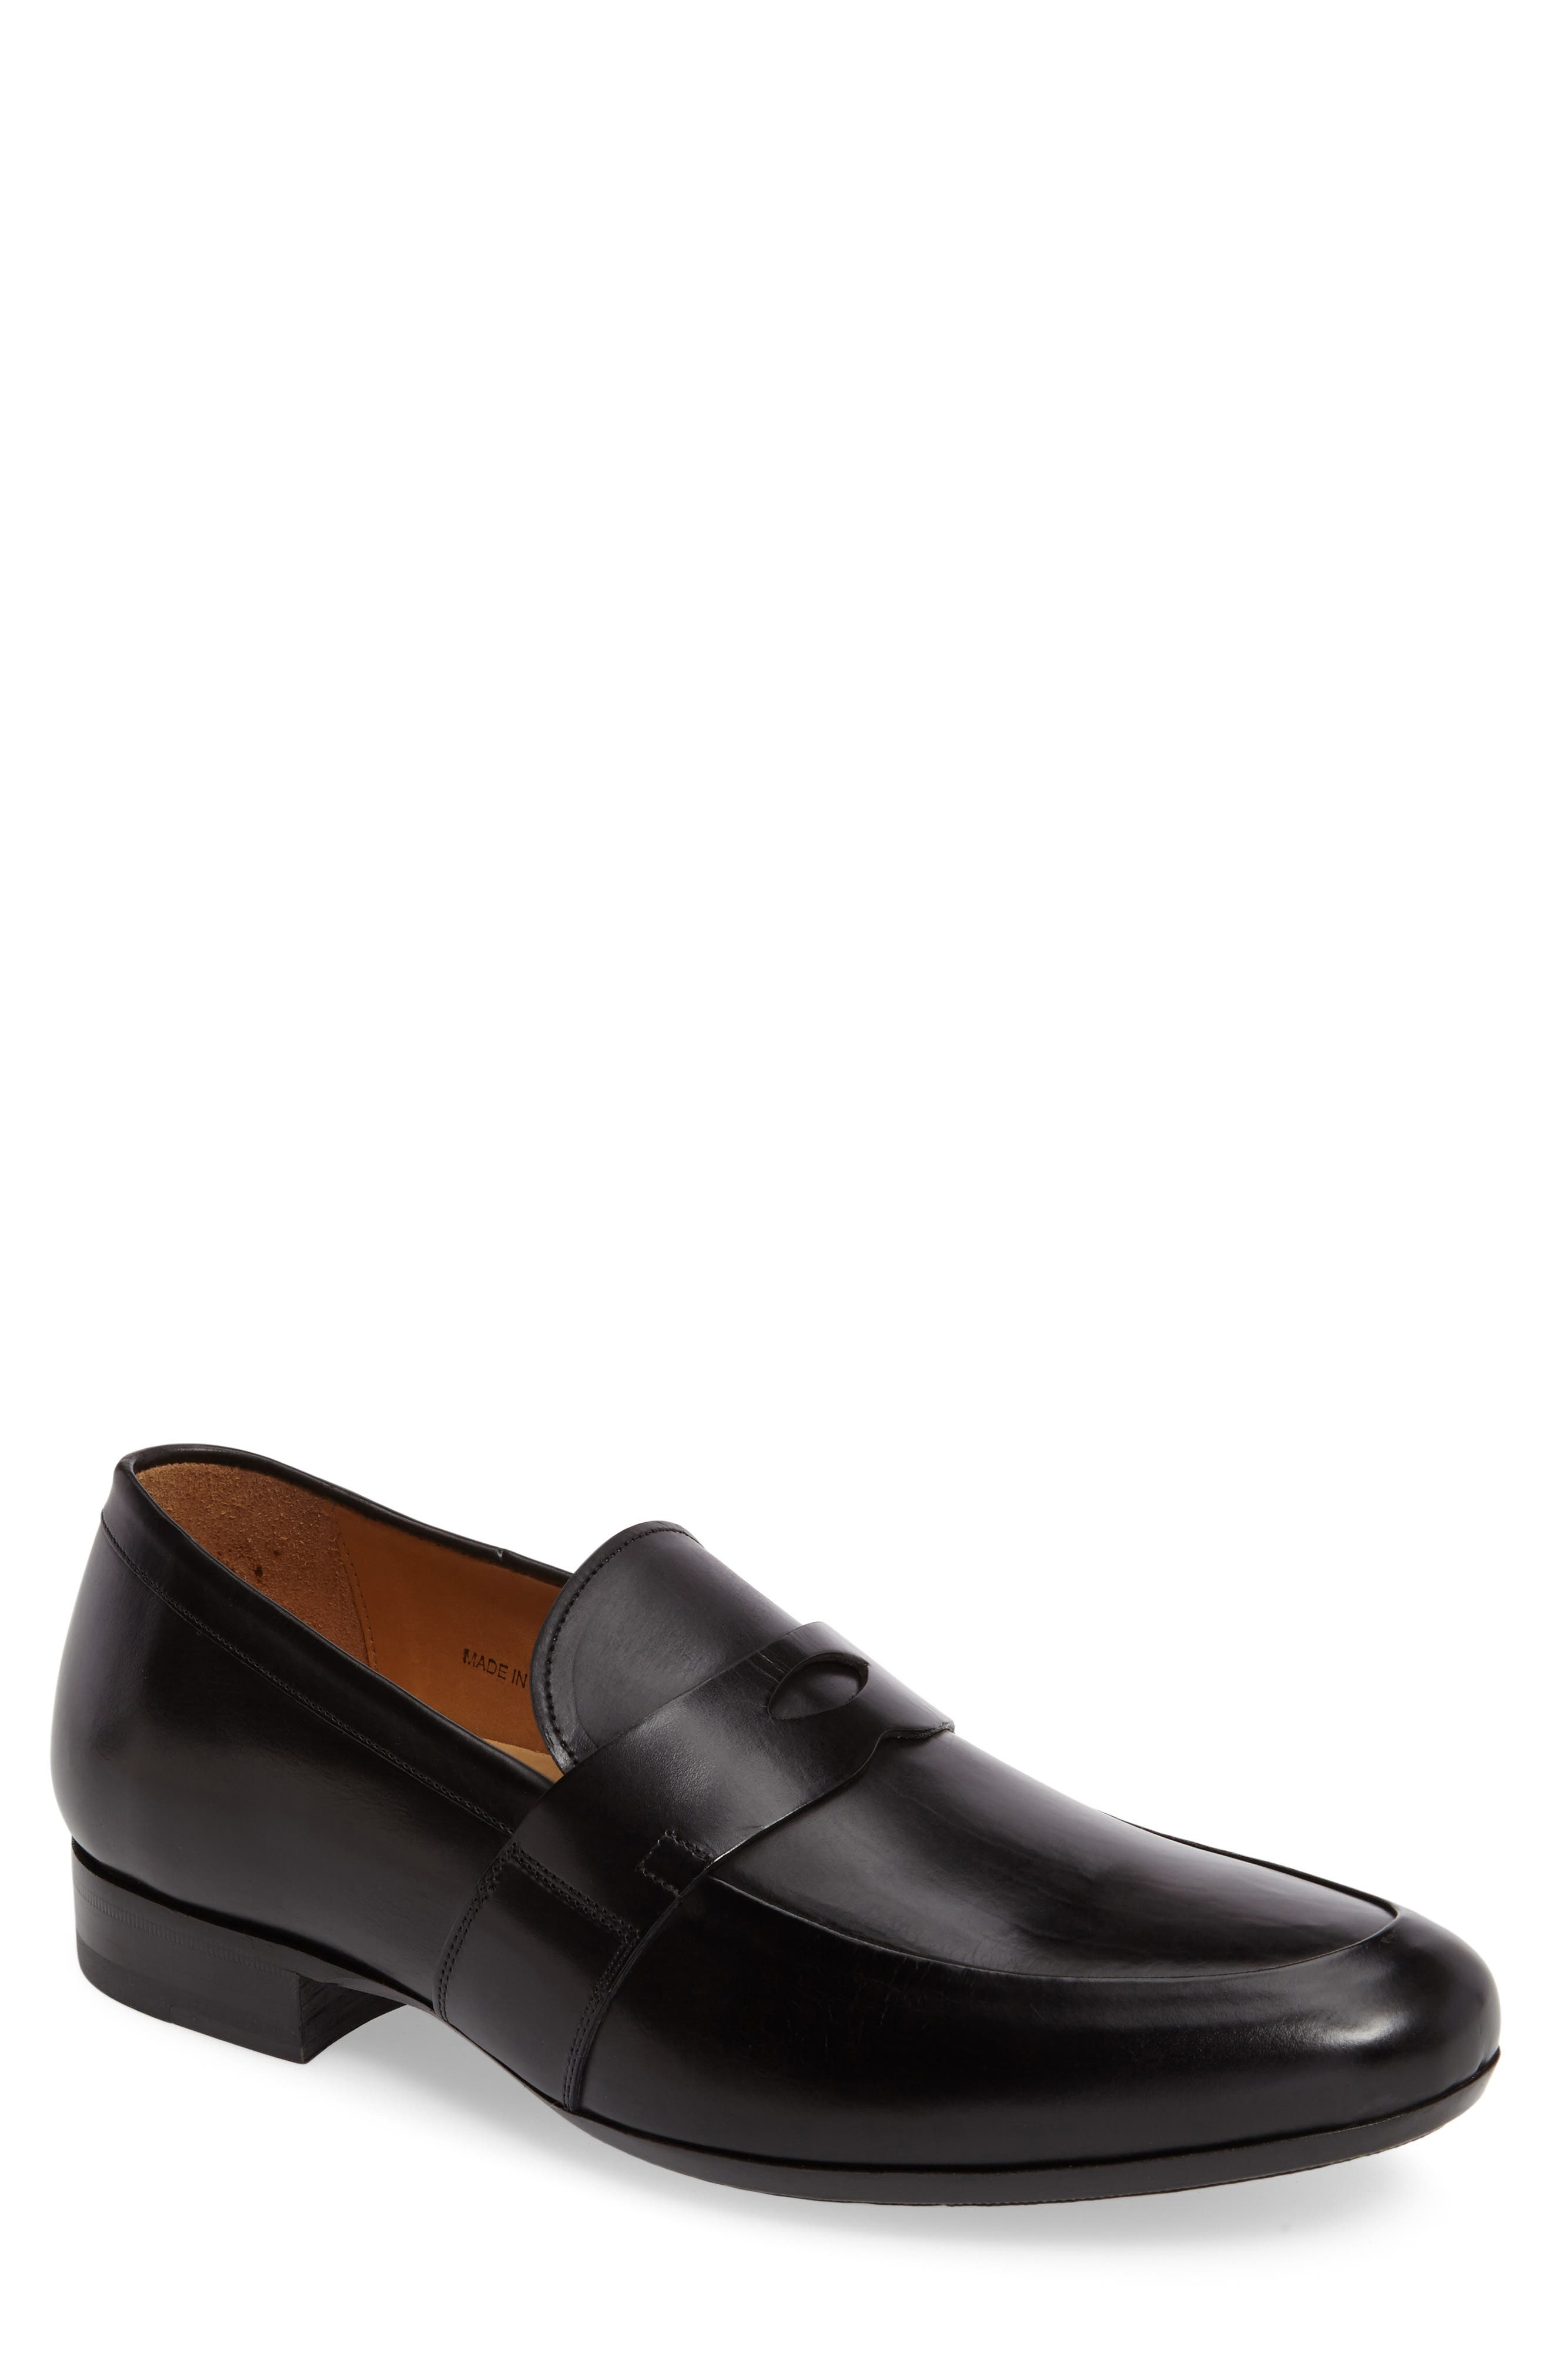 Leopold Penny Loafer,                         Main,                         color, 001